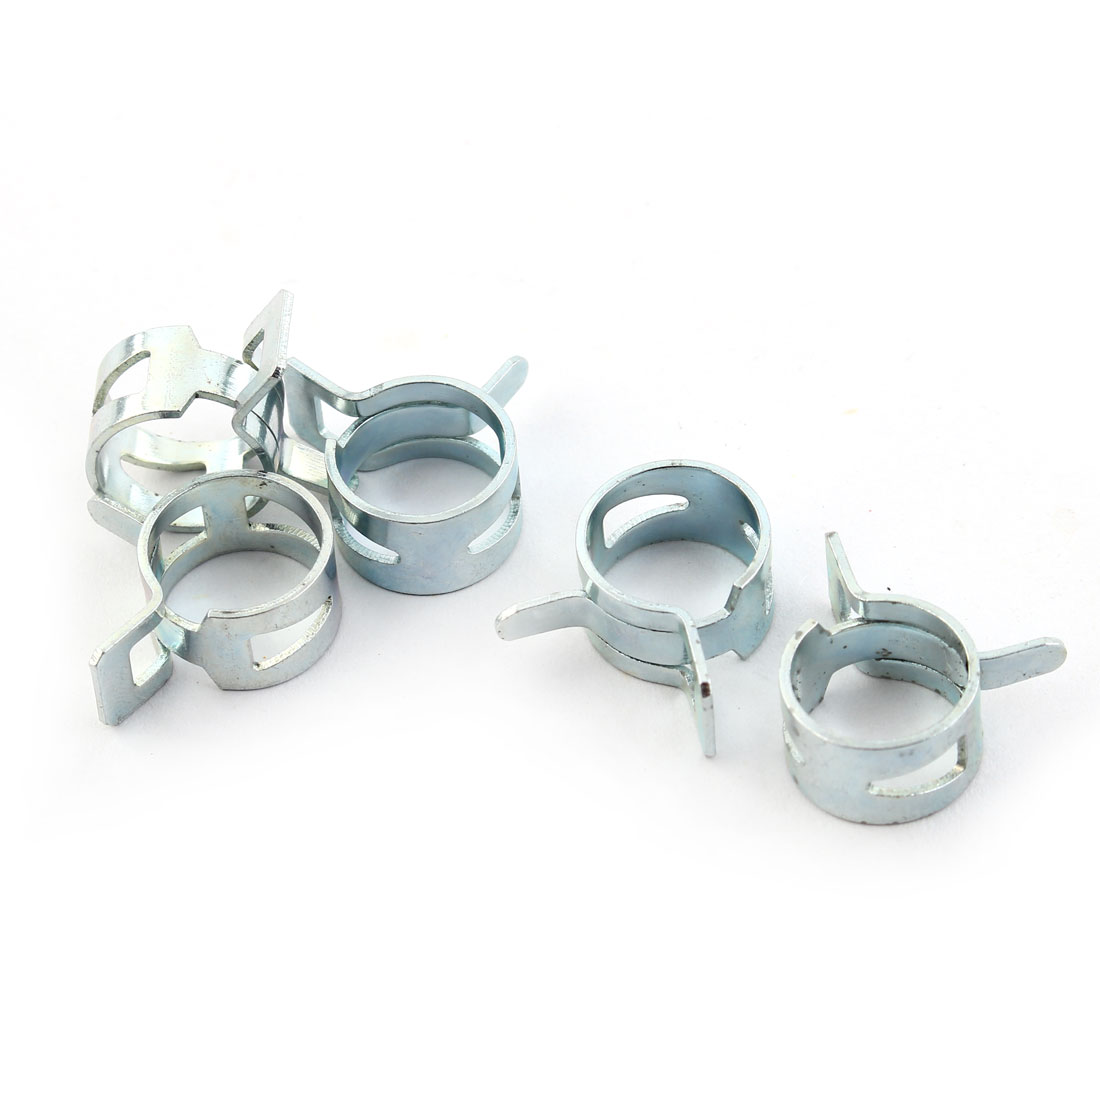 5 Pcs Water Cooling Hose Clamp For Pipe M8 Outter Diameter Silver Tone